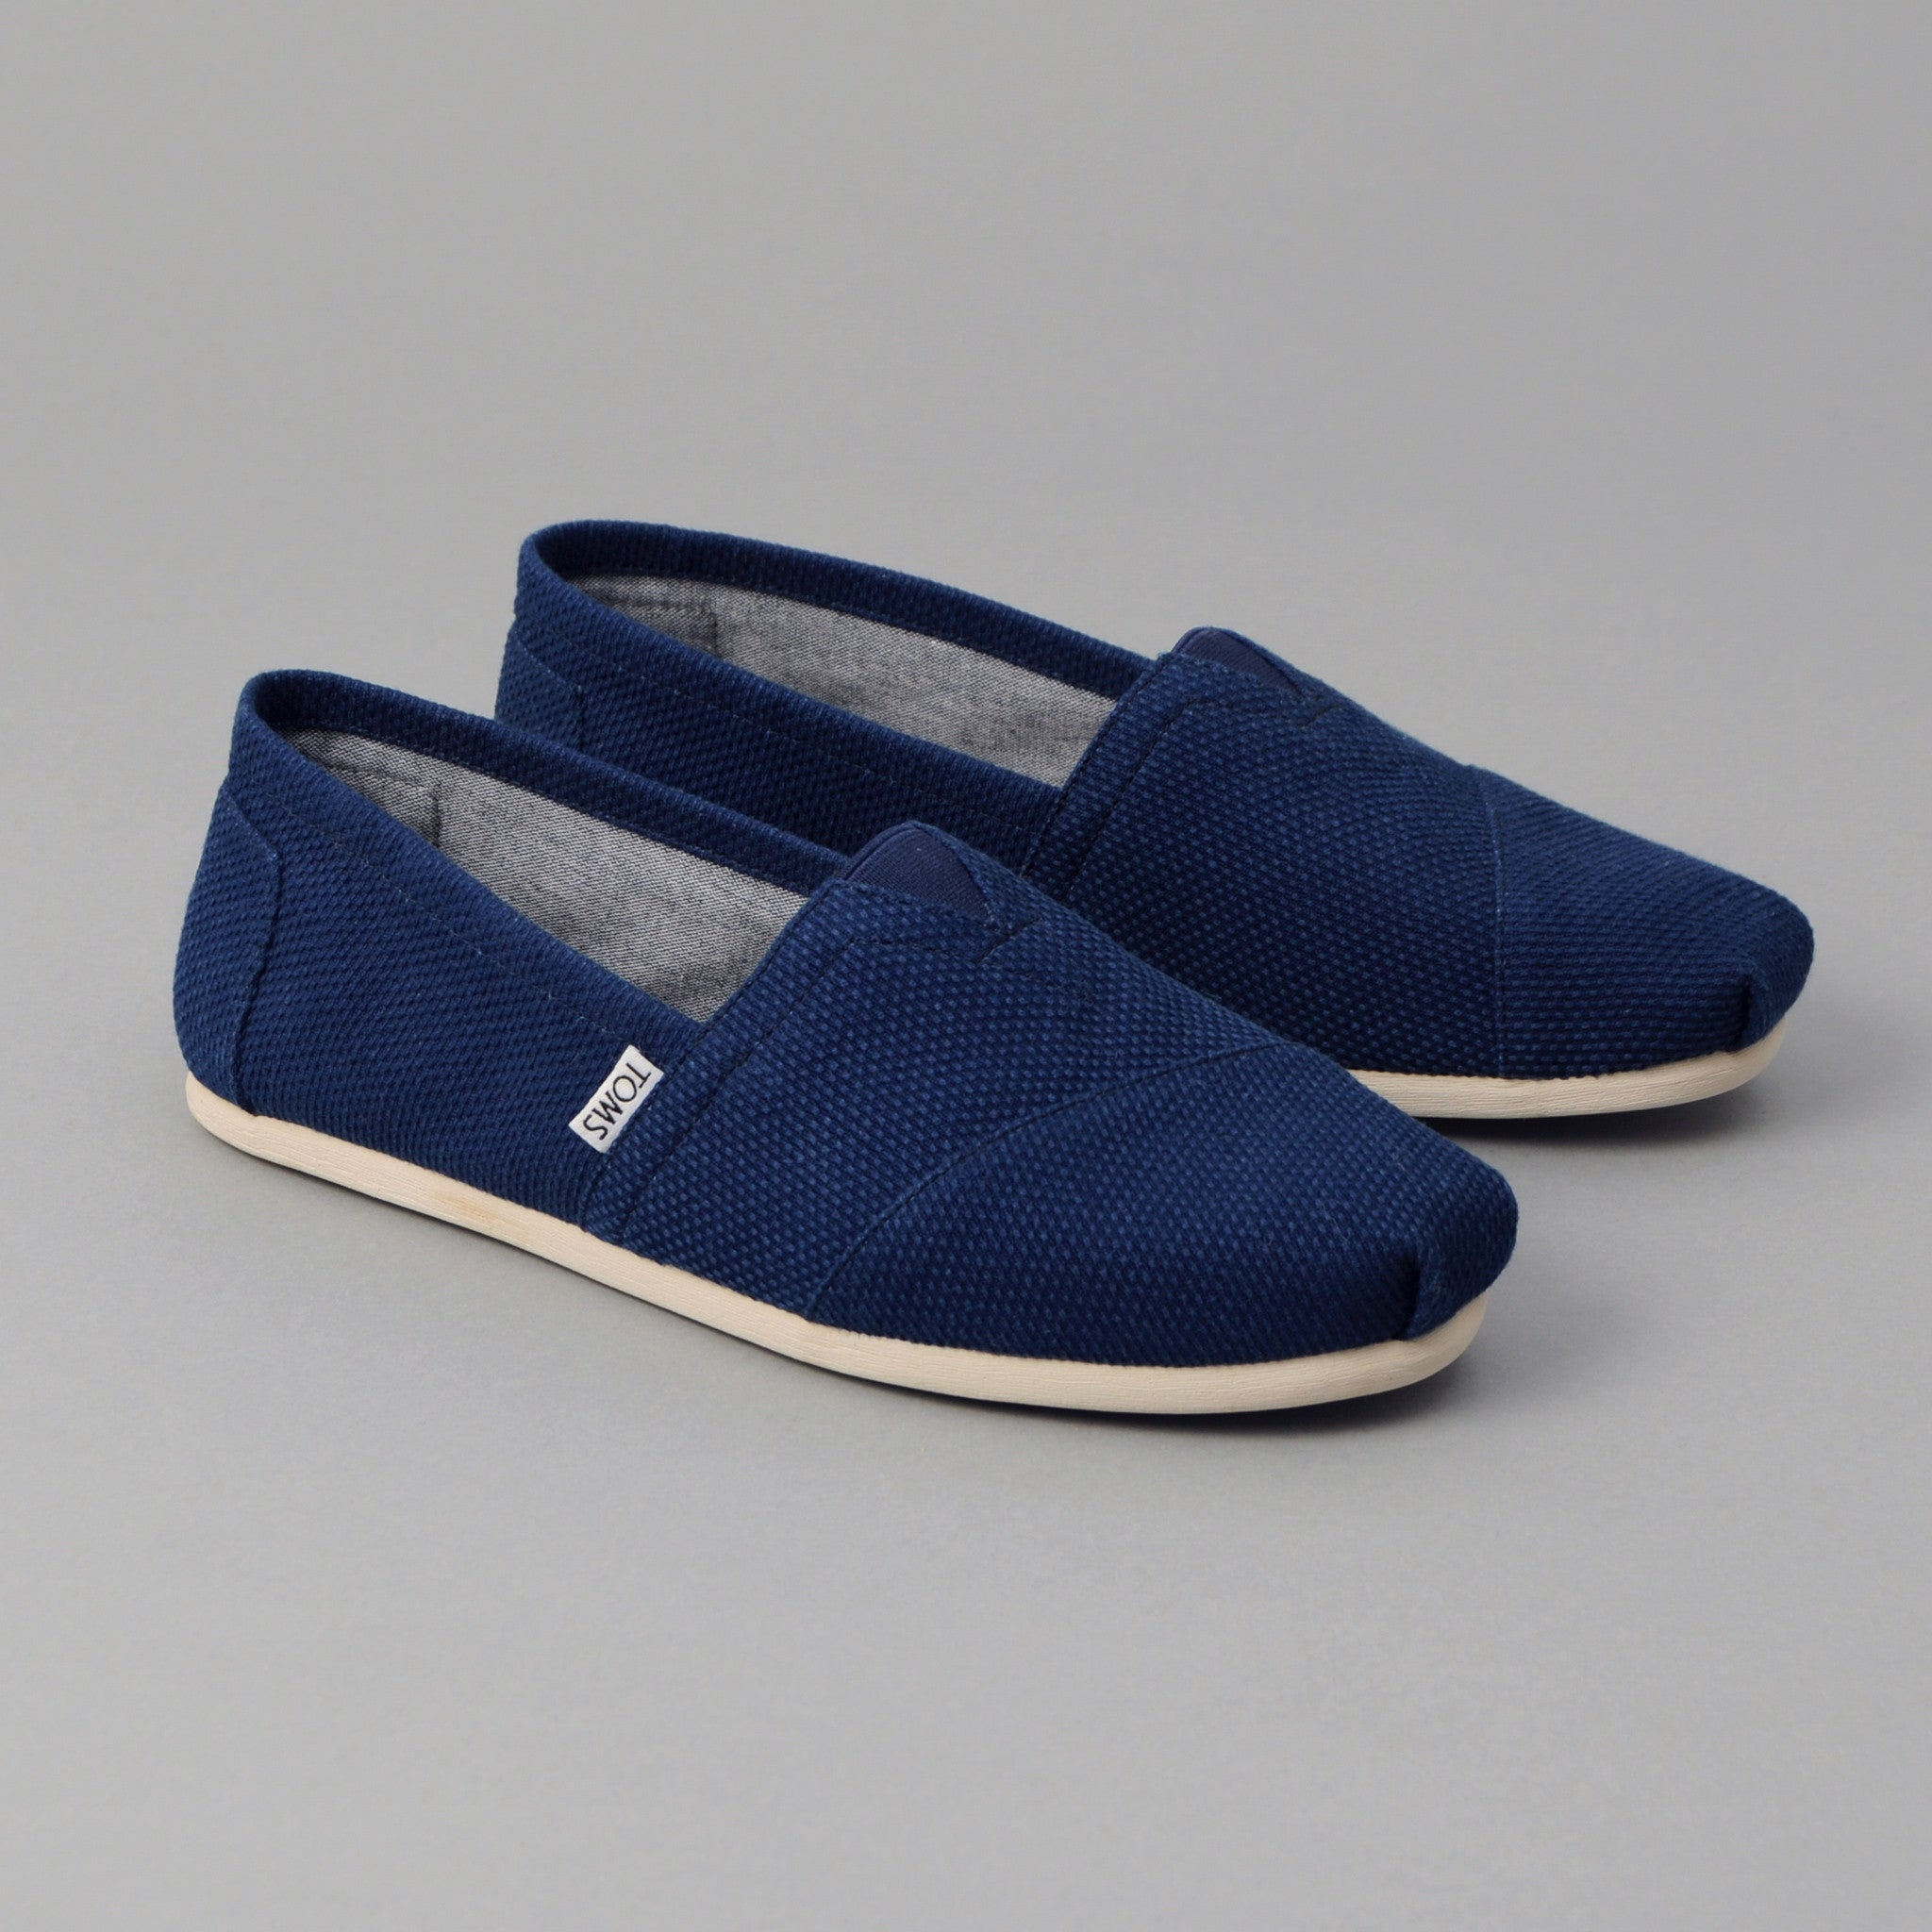 TOMS TOMS x The Hill-Side Men's Classic, Lightweight Indigo Sashiko